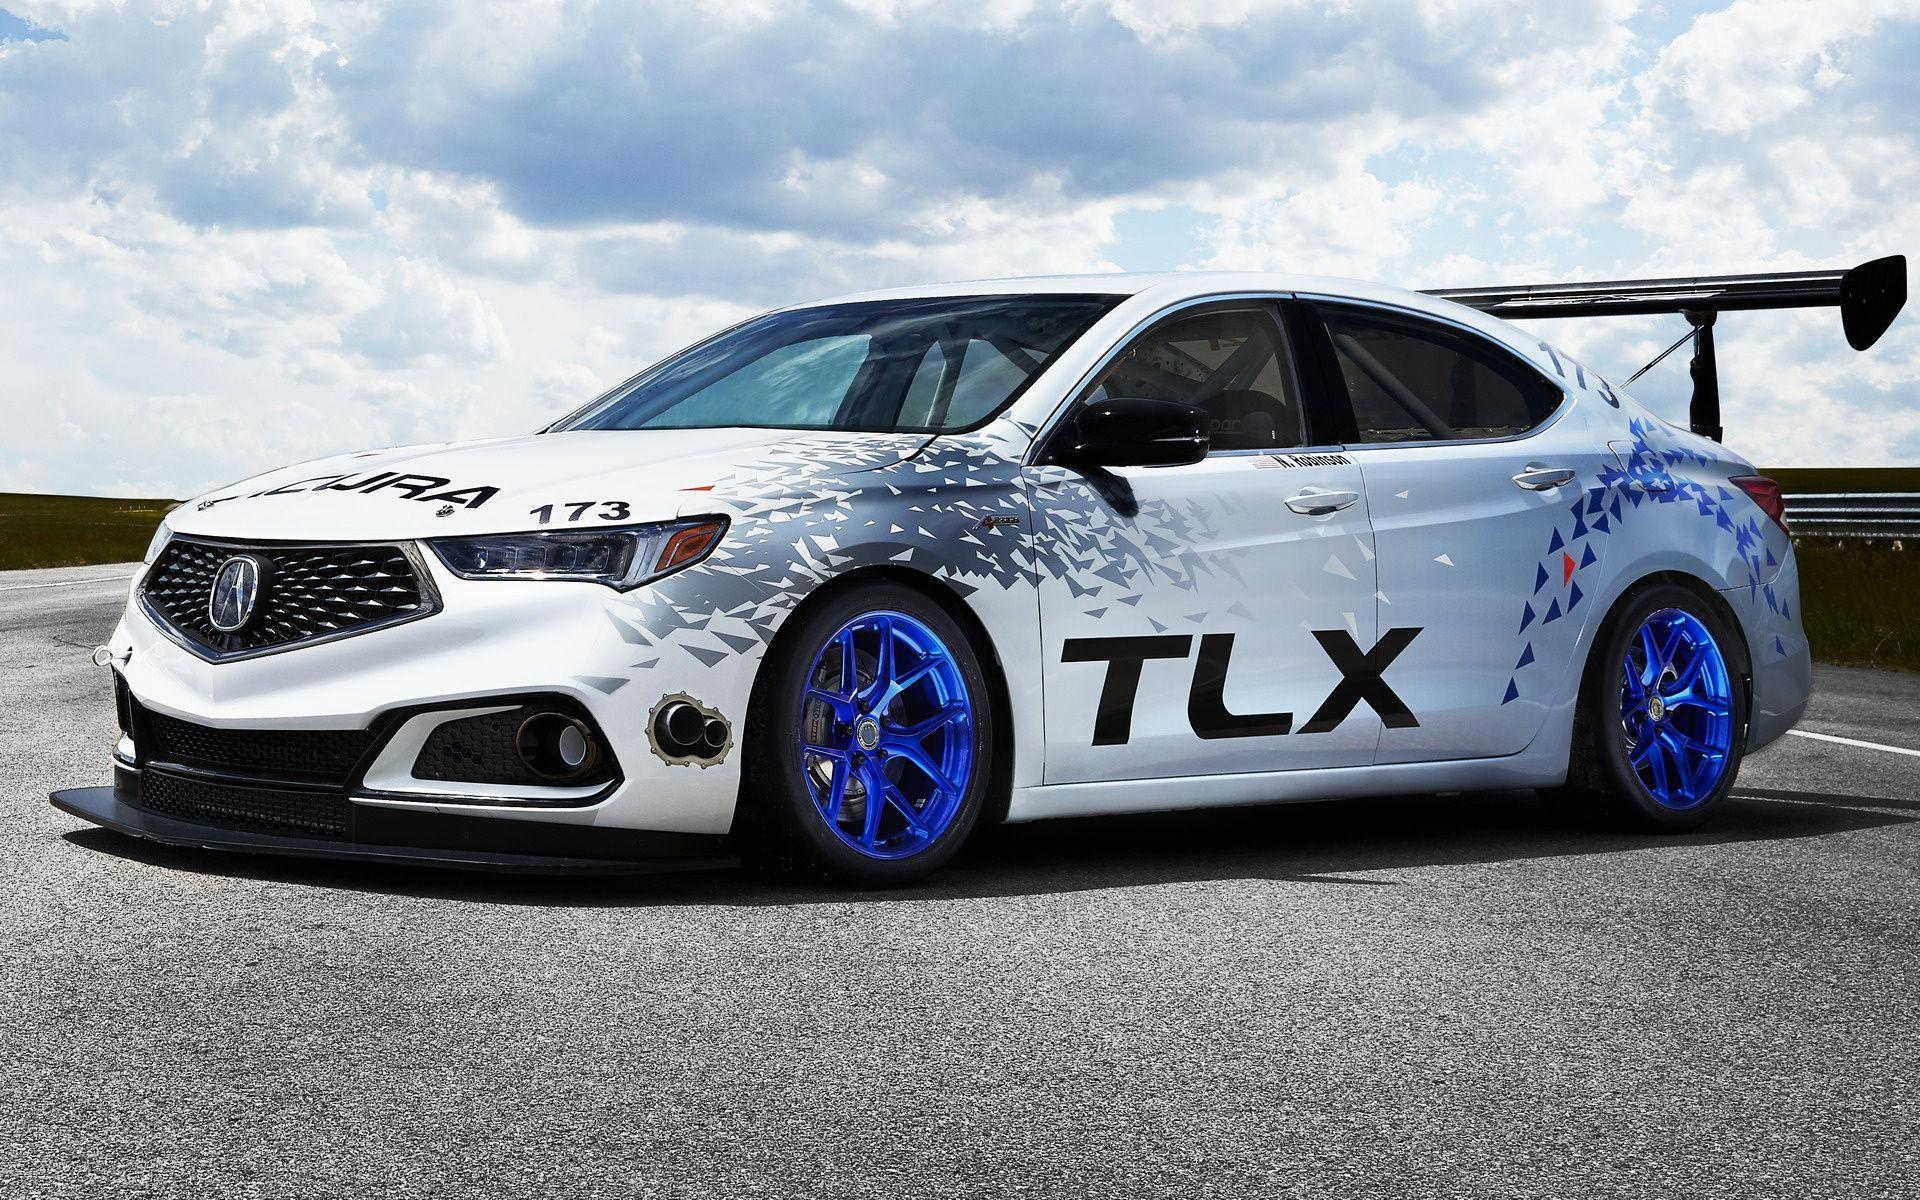 Acura TLX A-Spec Race Car (2017) Wallpapers and HD Images - Car Pixel